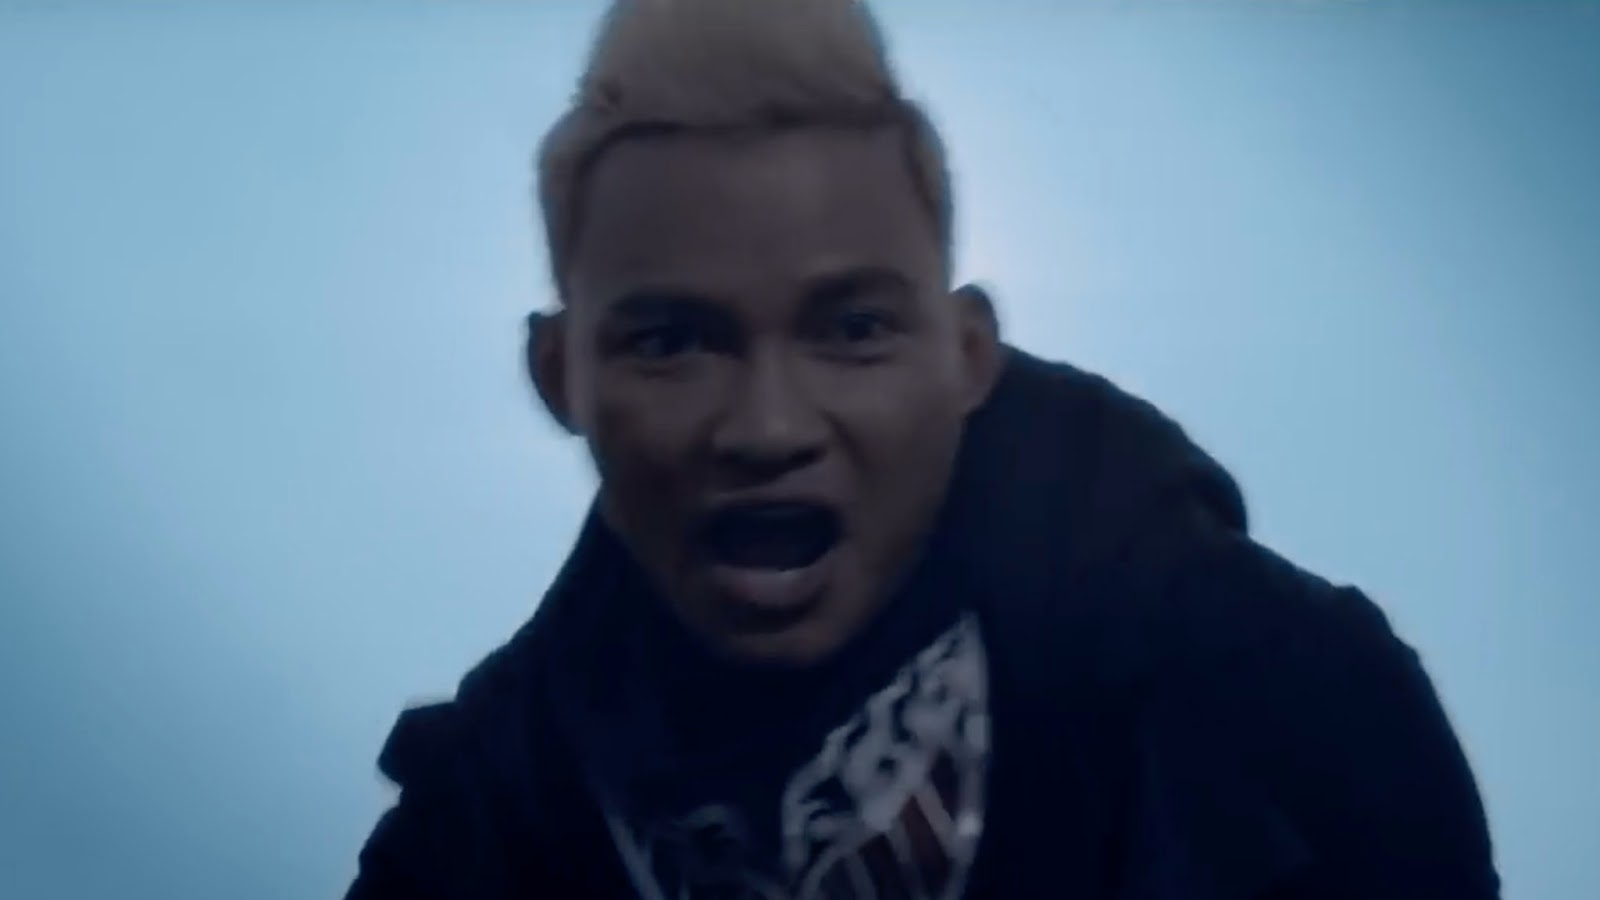 Jaa Beautiful the last thing i see: watch tony jaa's new music video. yes, tony